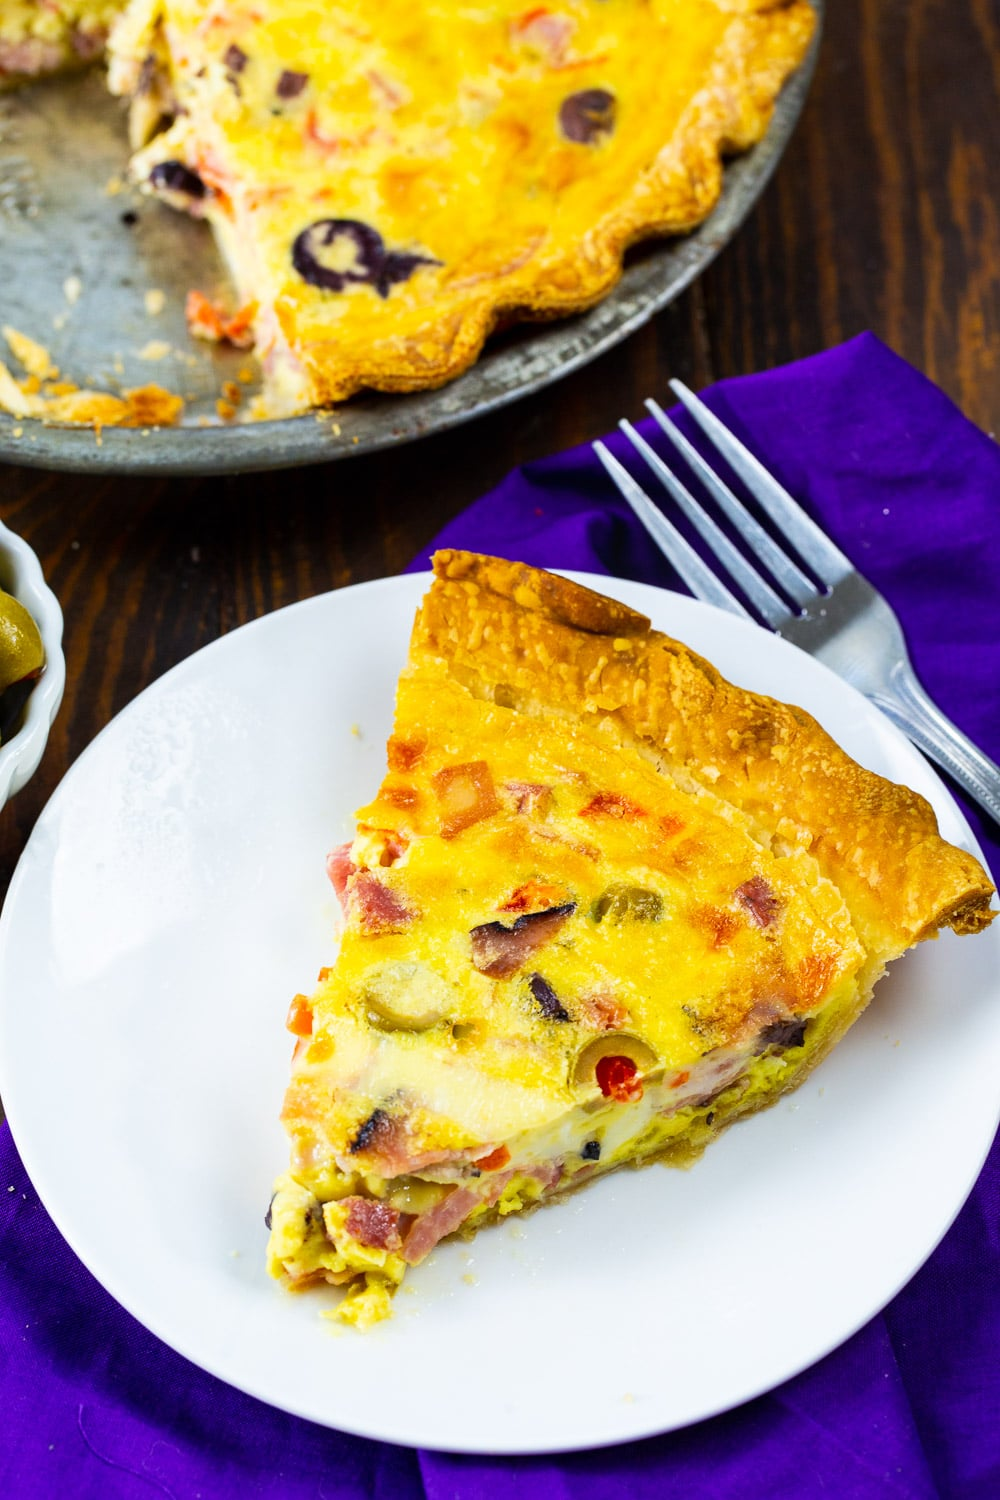 Quiche in a pie pan and a slice on a plate.